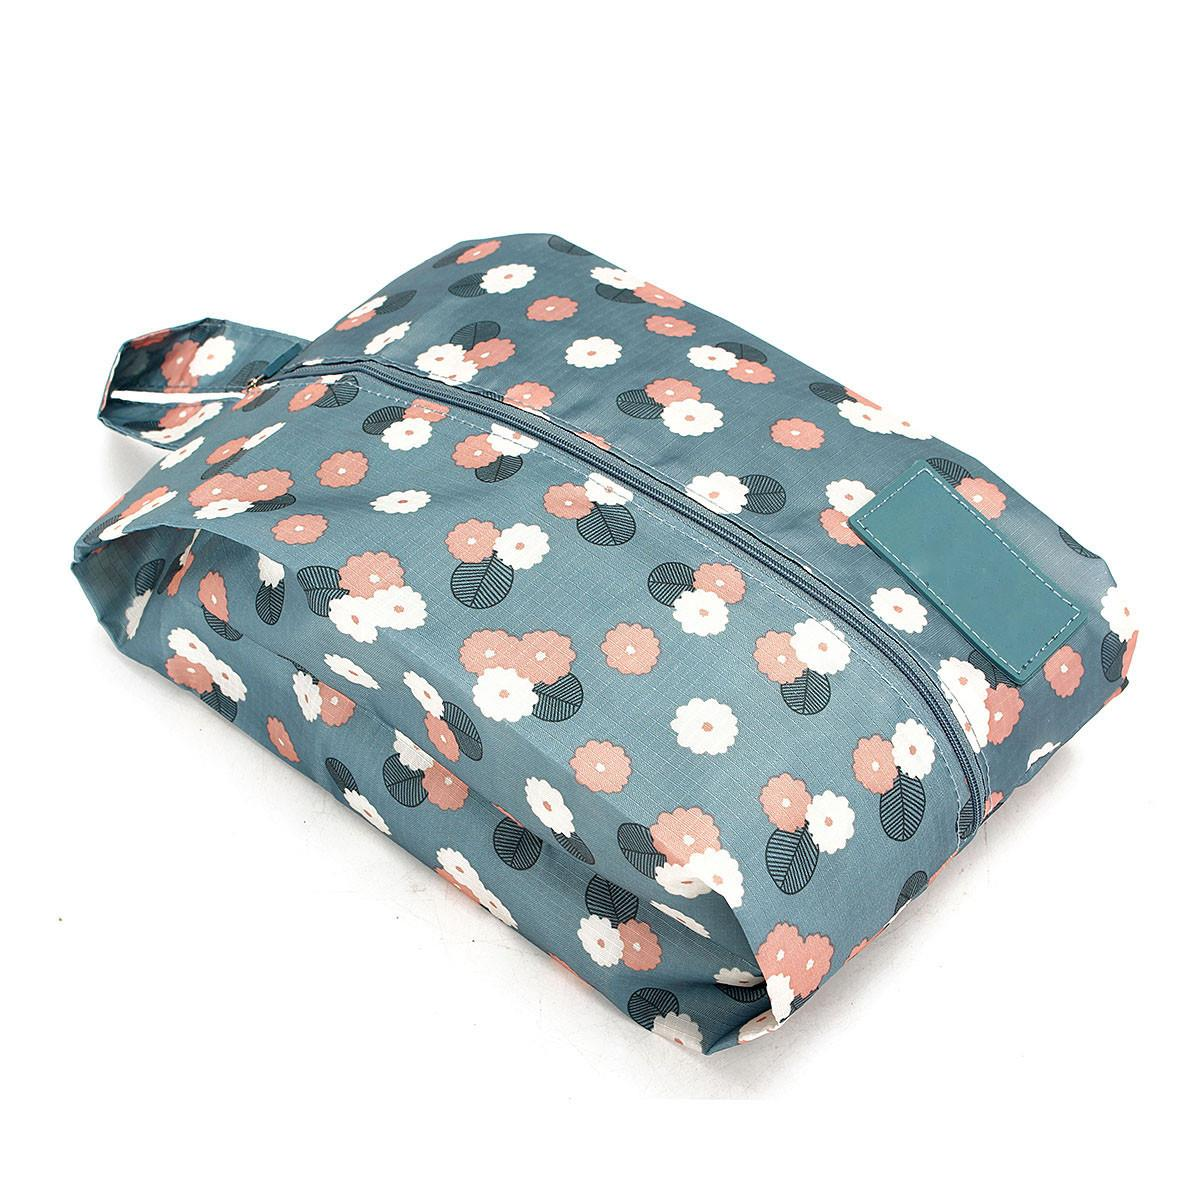 Print Travel Shoe Bag Organizer With Women Zipper Waterproof Foldable Toiletry Makeup Pouch Storage Bags(China (Mainland))